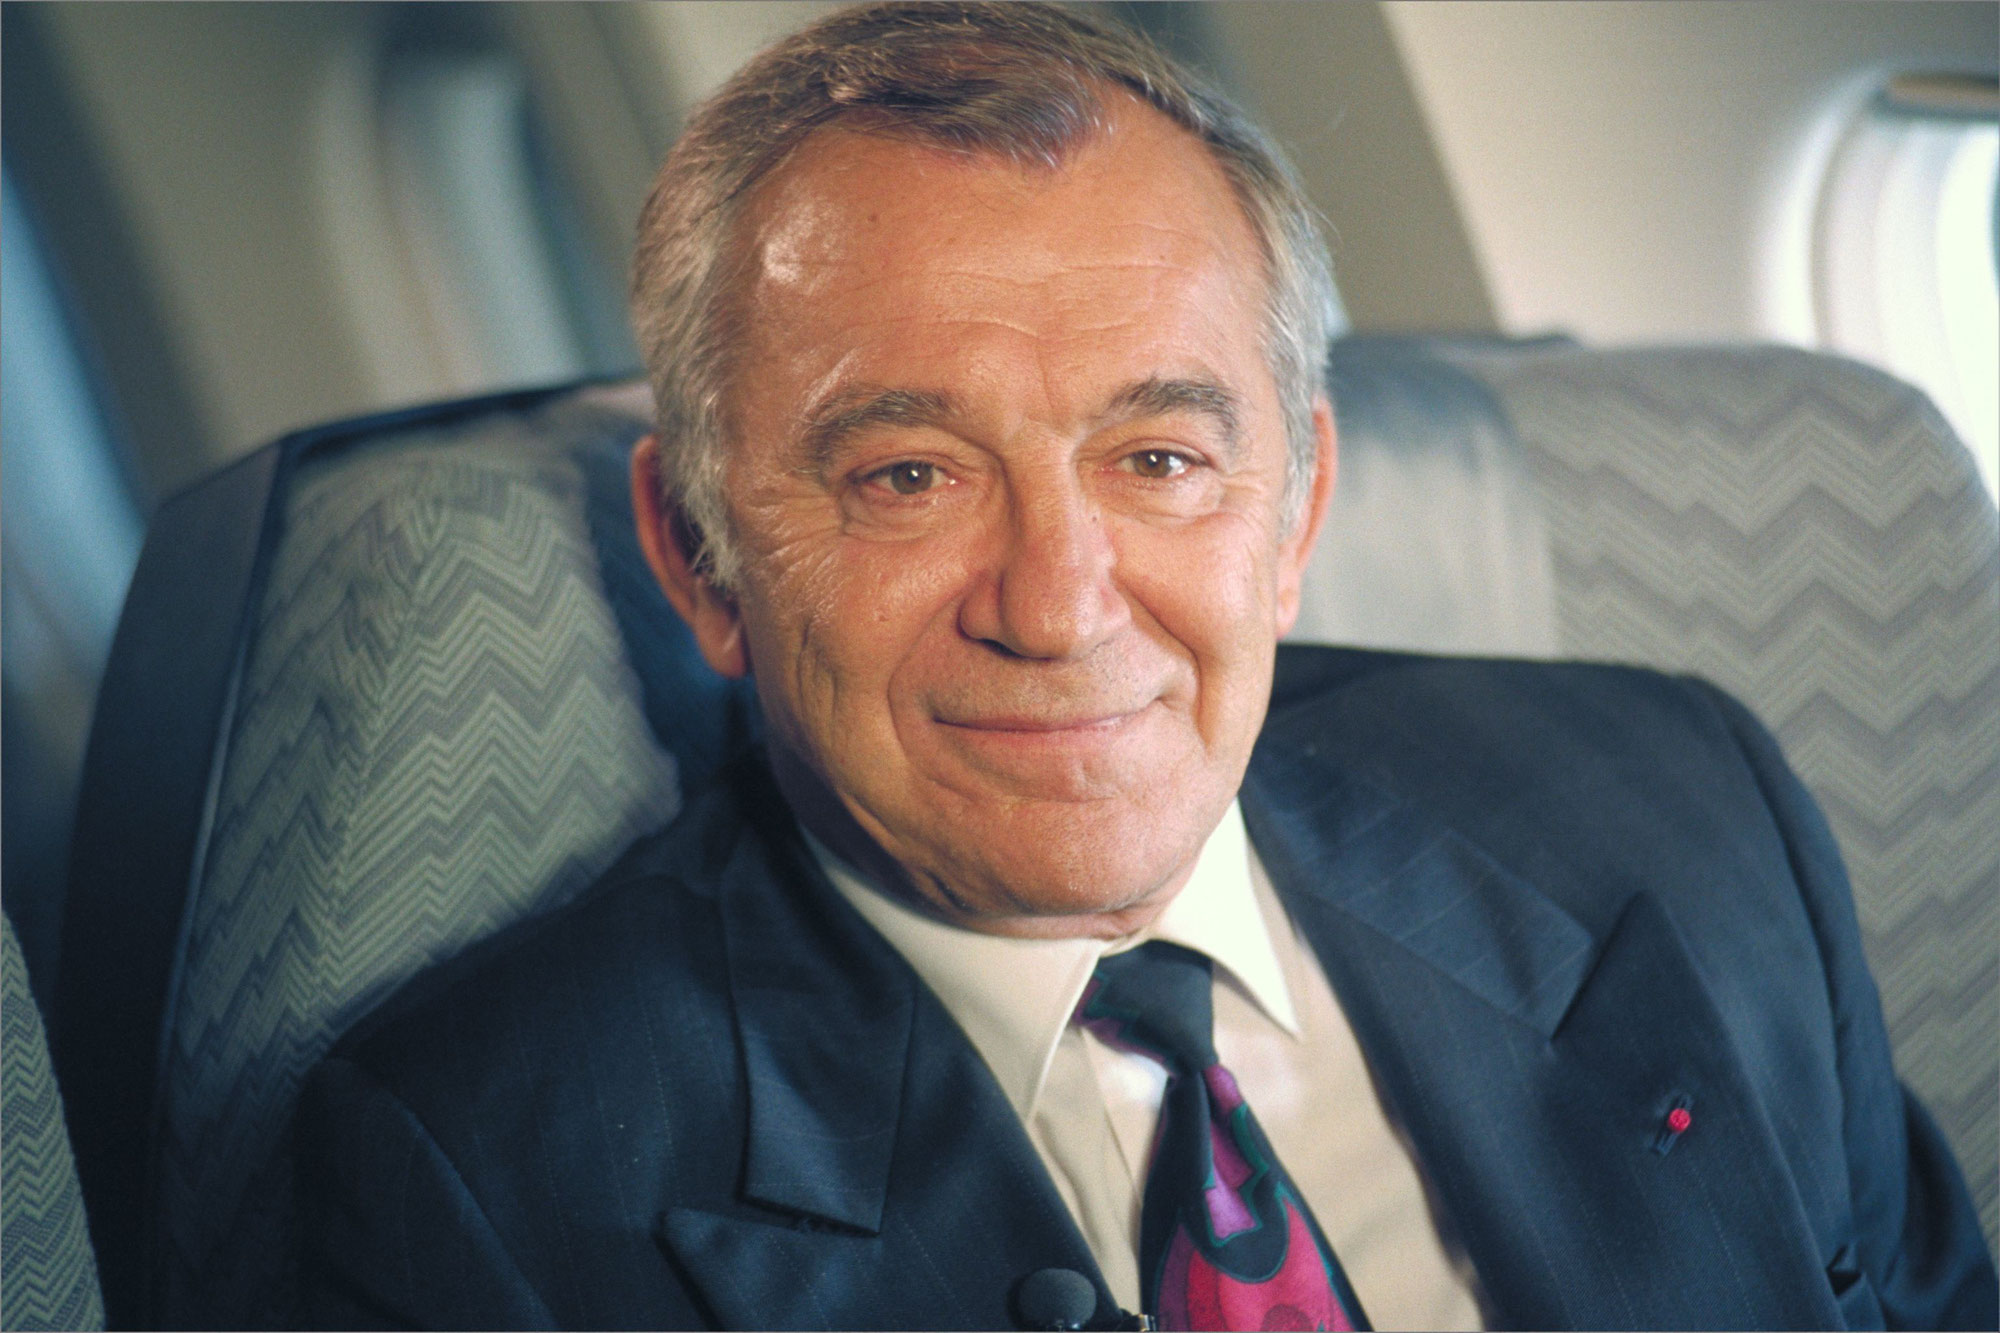 Airbus Fly-By-Wire visionary Bernard Ziegler passes away  / Décès de Bernard Ziegler, un visionnaire du Fly-By-Wire d'Airbus